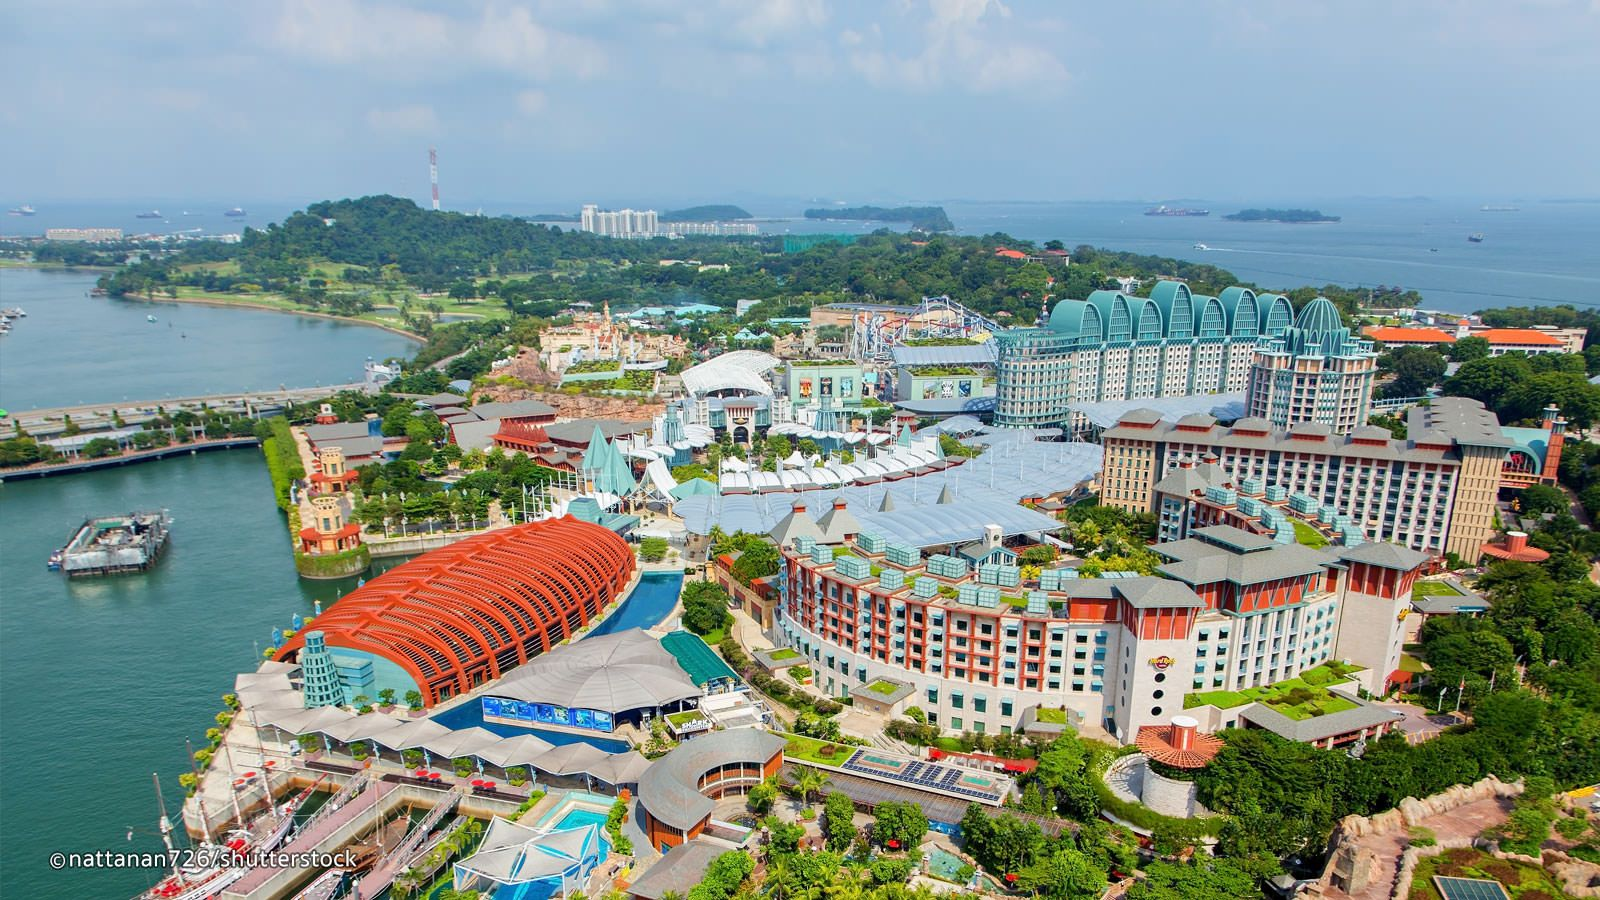 Singapur Things To Do The Best Attractions In Sentosa All Share One Thing In Common Fun And Lots Holiday In Singapore Sentosa Island Singapore Island Travel